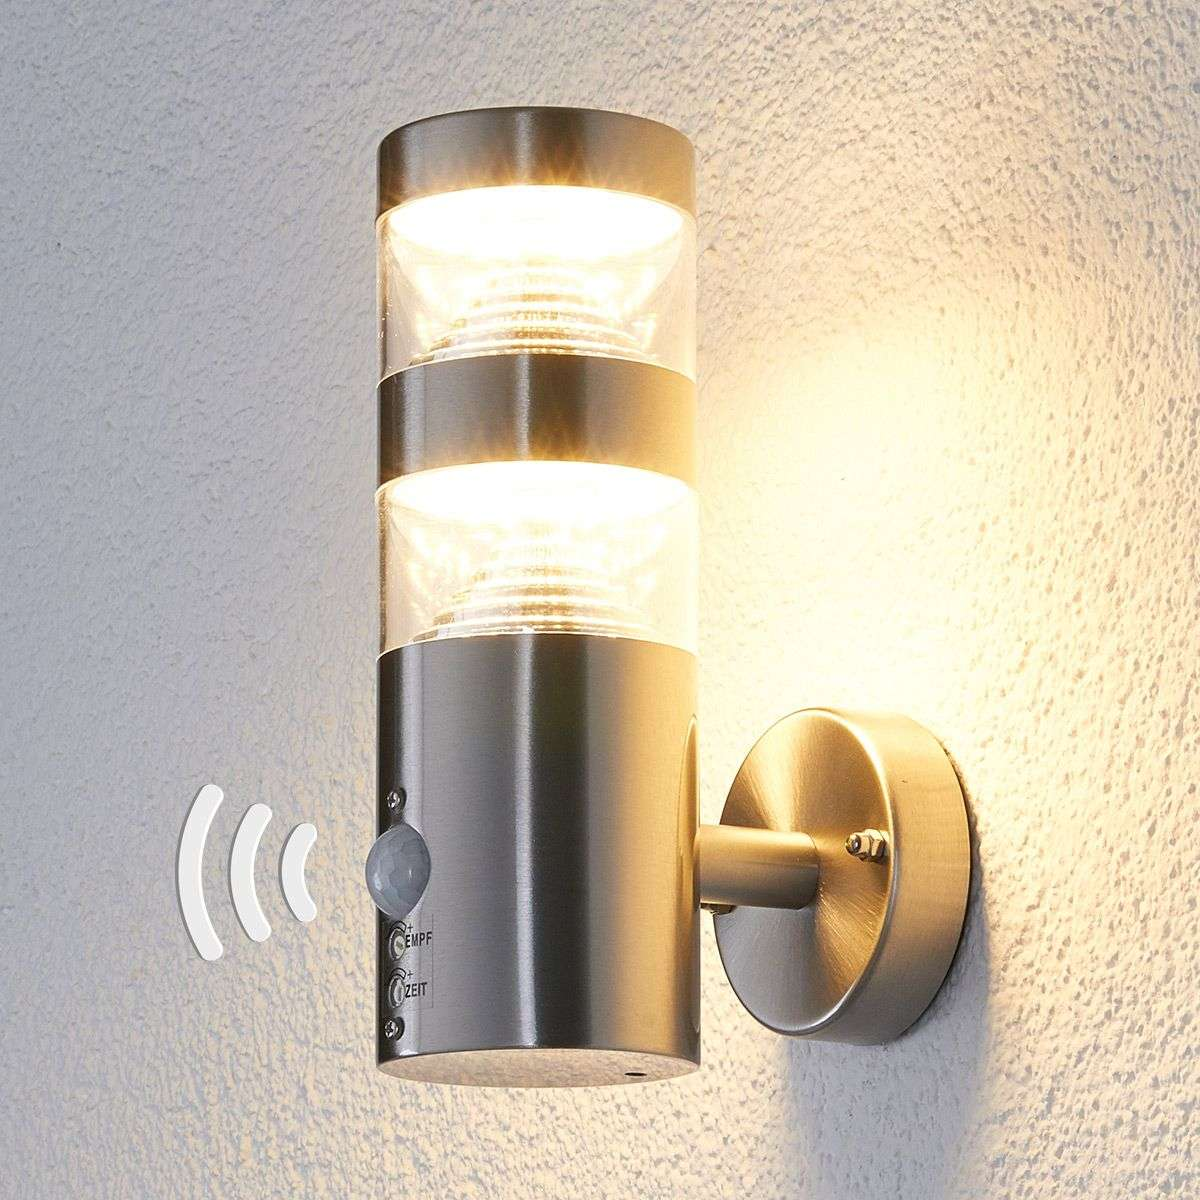 led outdoor wall light lanea with motion sensor. Black Bedroom Furniture Sets. Home Design Ideas